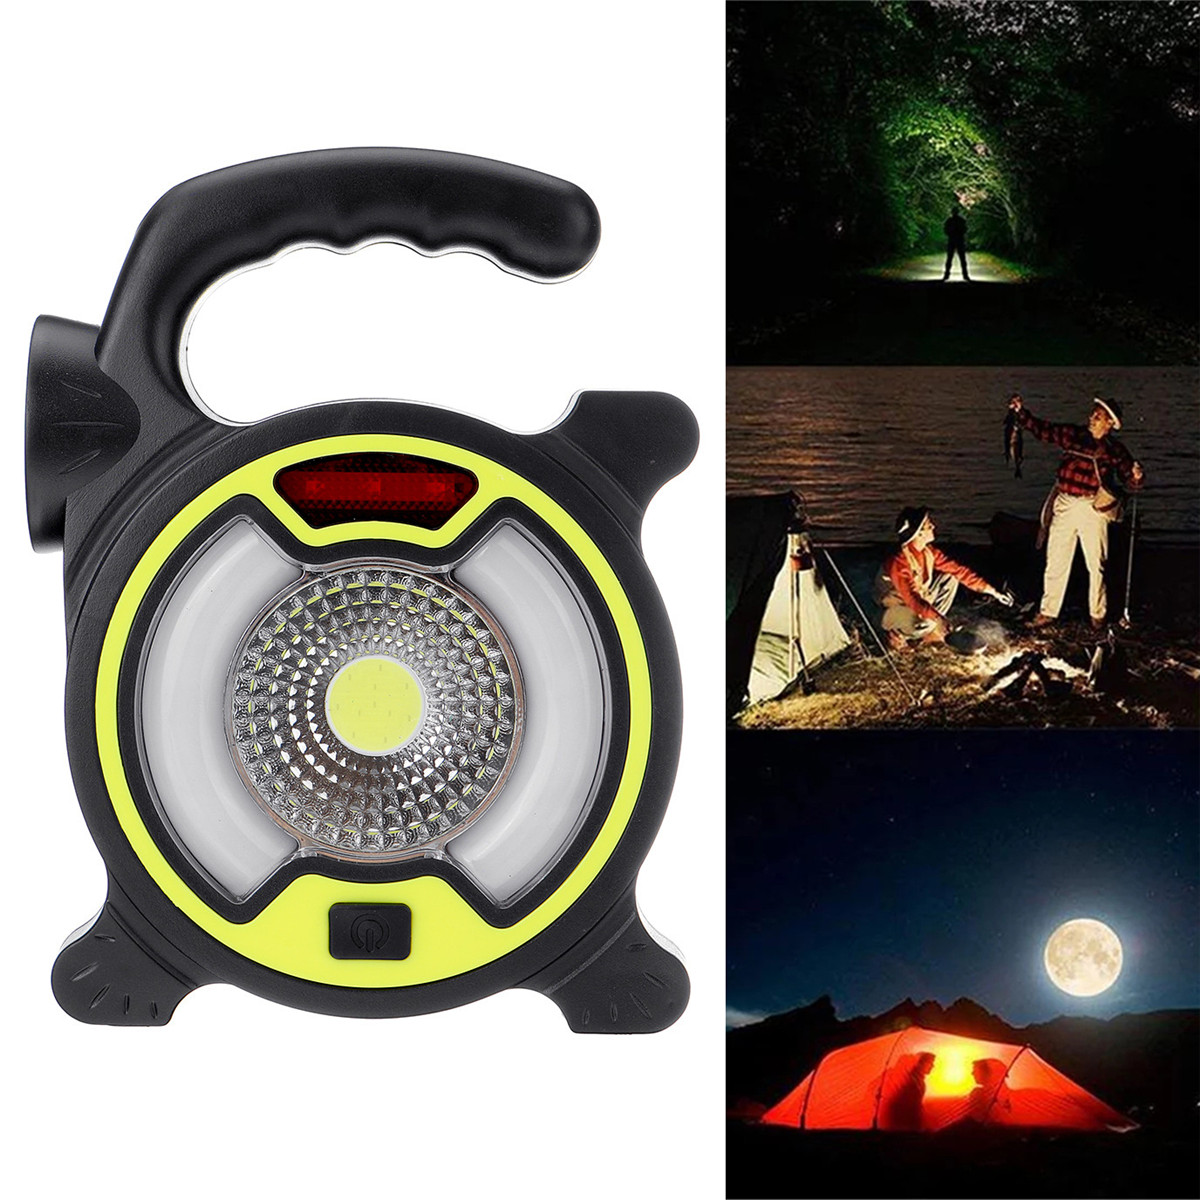 150LM COB Work Light 4 Mode USB Rechargeable Searchlight 200M Outdoor Fishing Camping Light